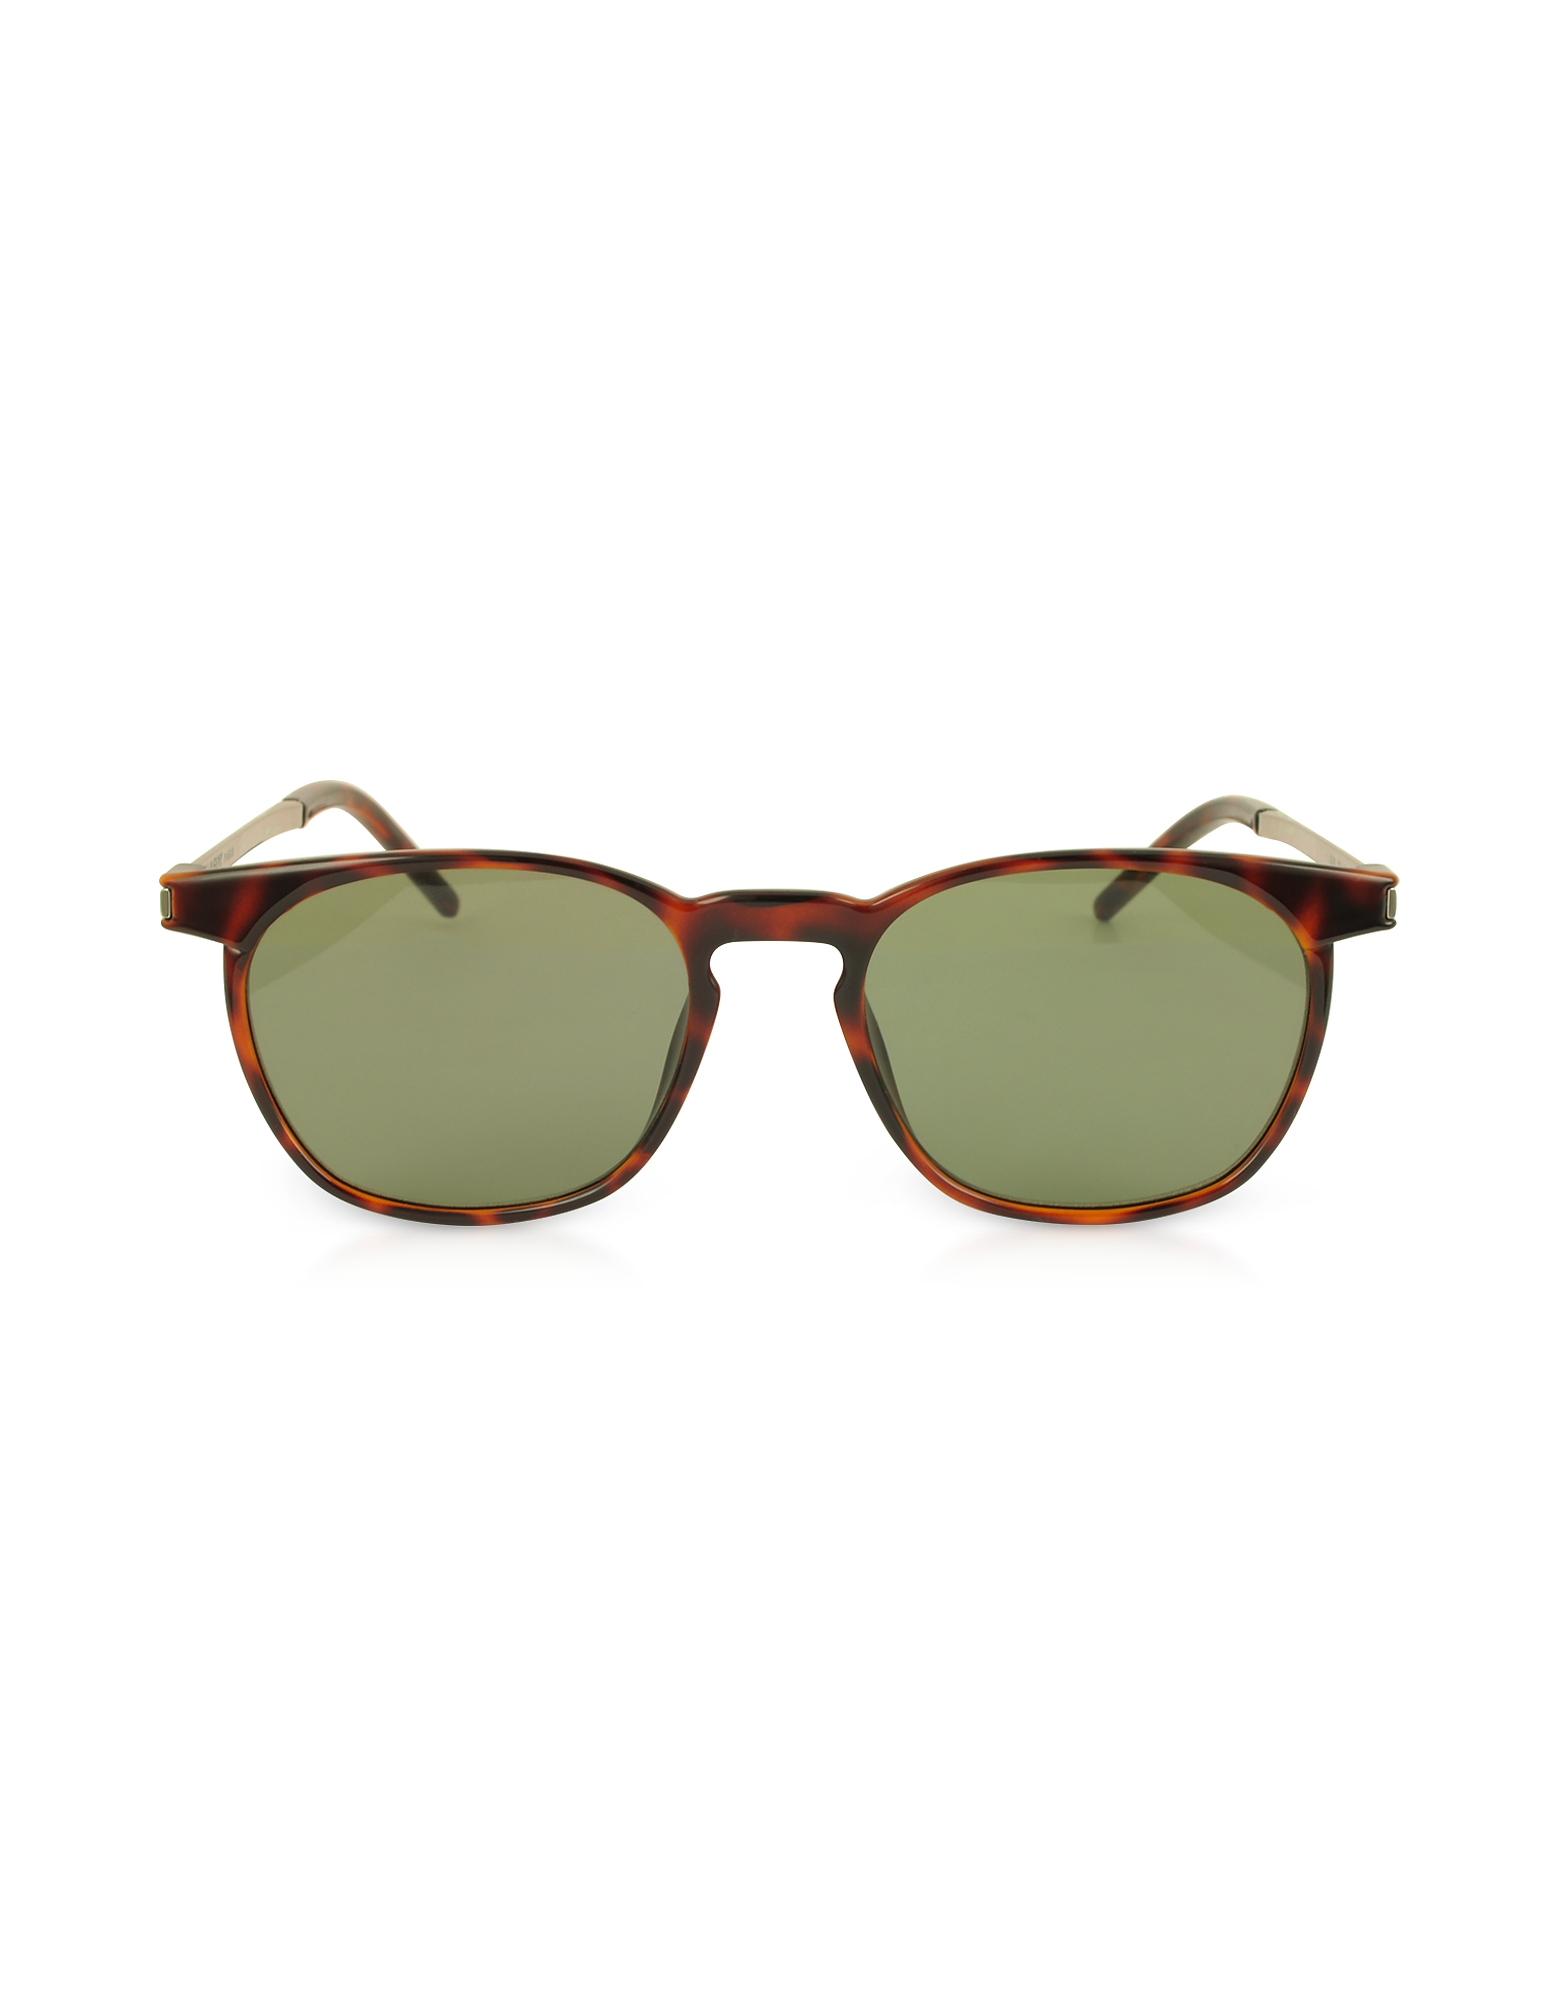 Saint Laurent Designer Sunglasses, SL 240 Acetate and Metal Squared Men's Sunglasses